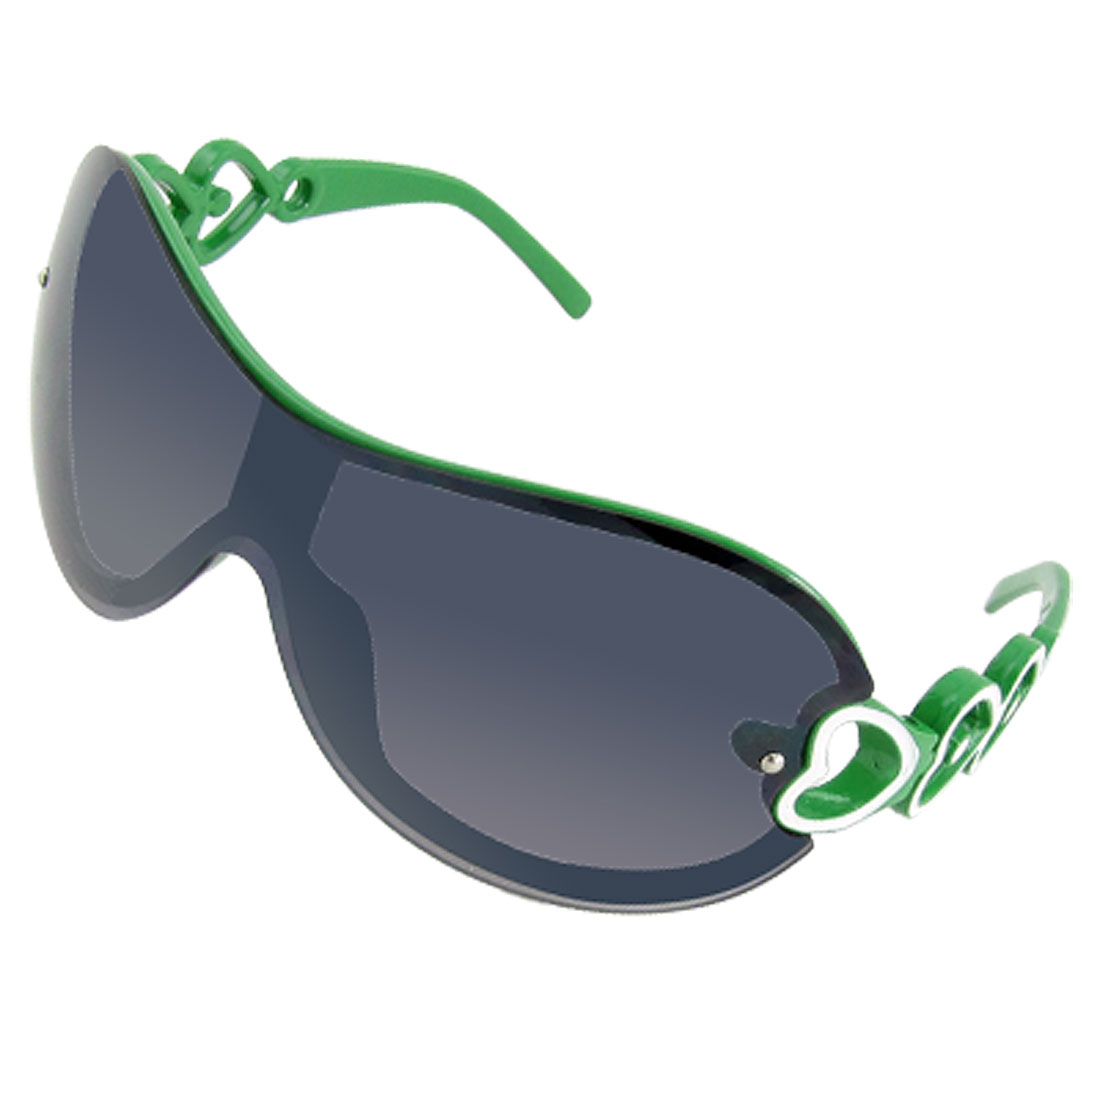 Black Lens Green Rim Frame Children Kids Sports Sunglasses